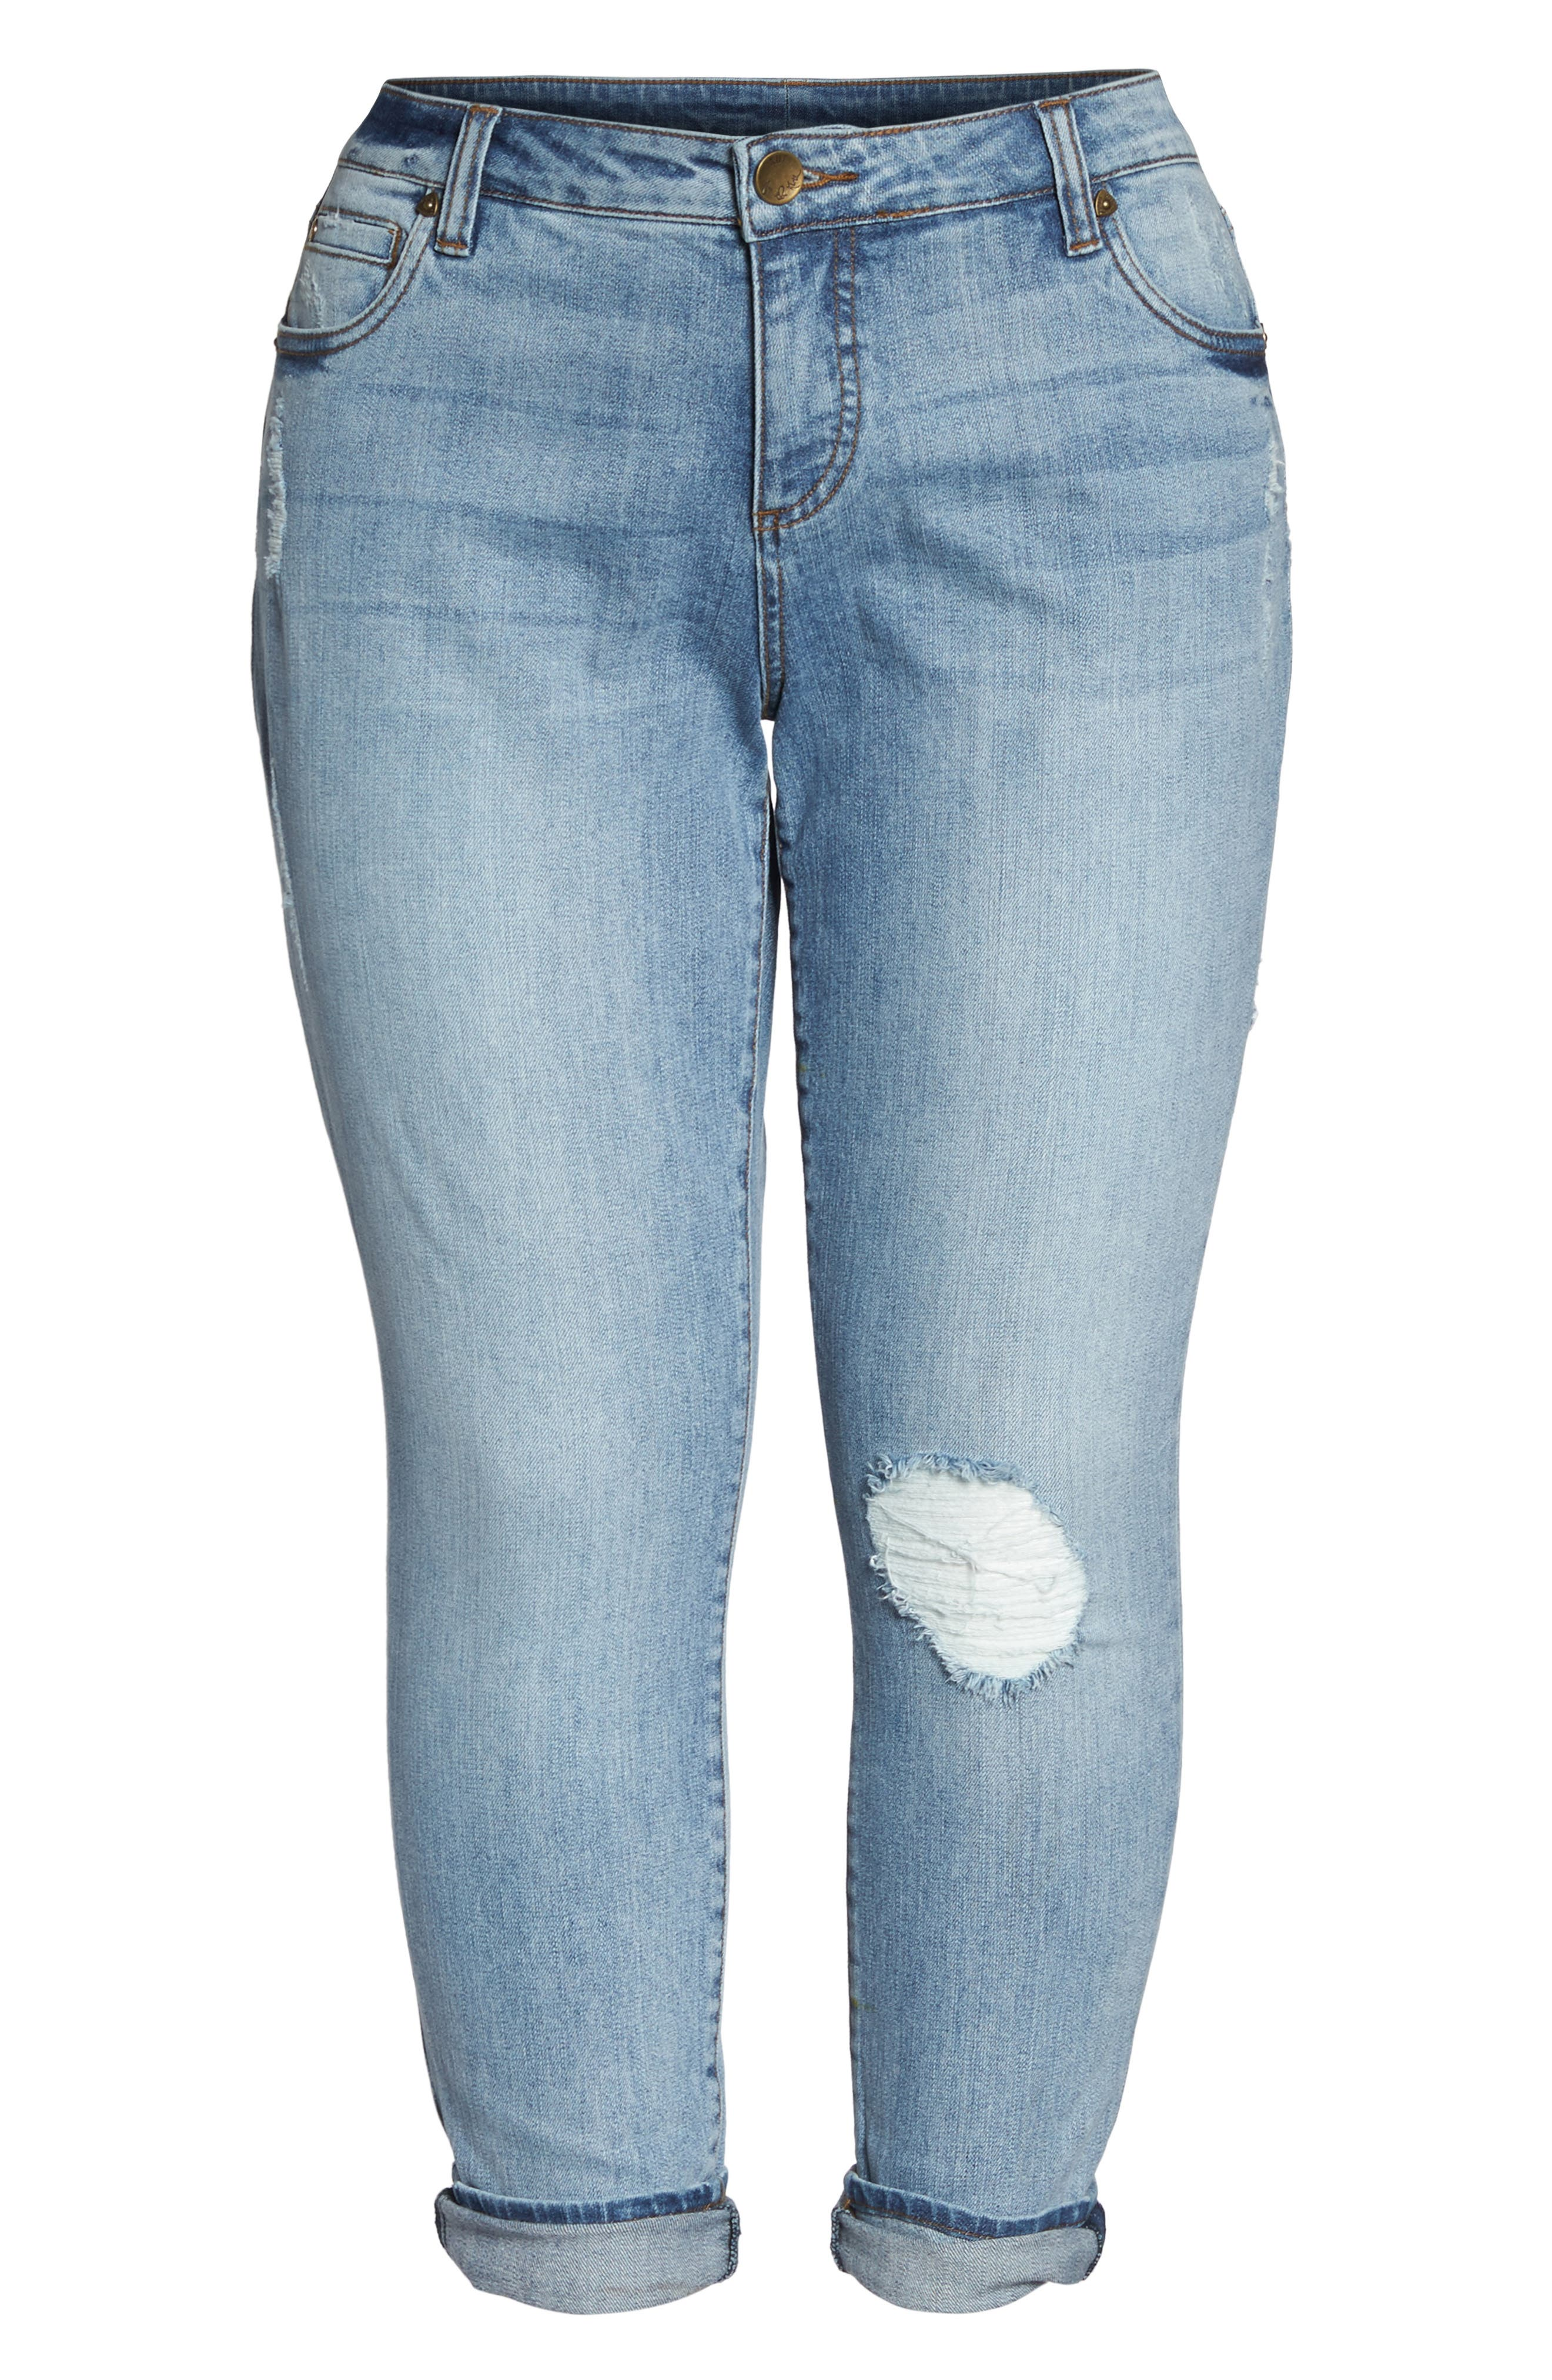 Catherine Distressed Boyfriend Jeans,                             Alternate thumbnail 6, color,                             ANNOUNCE